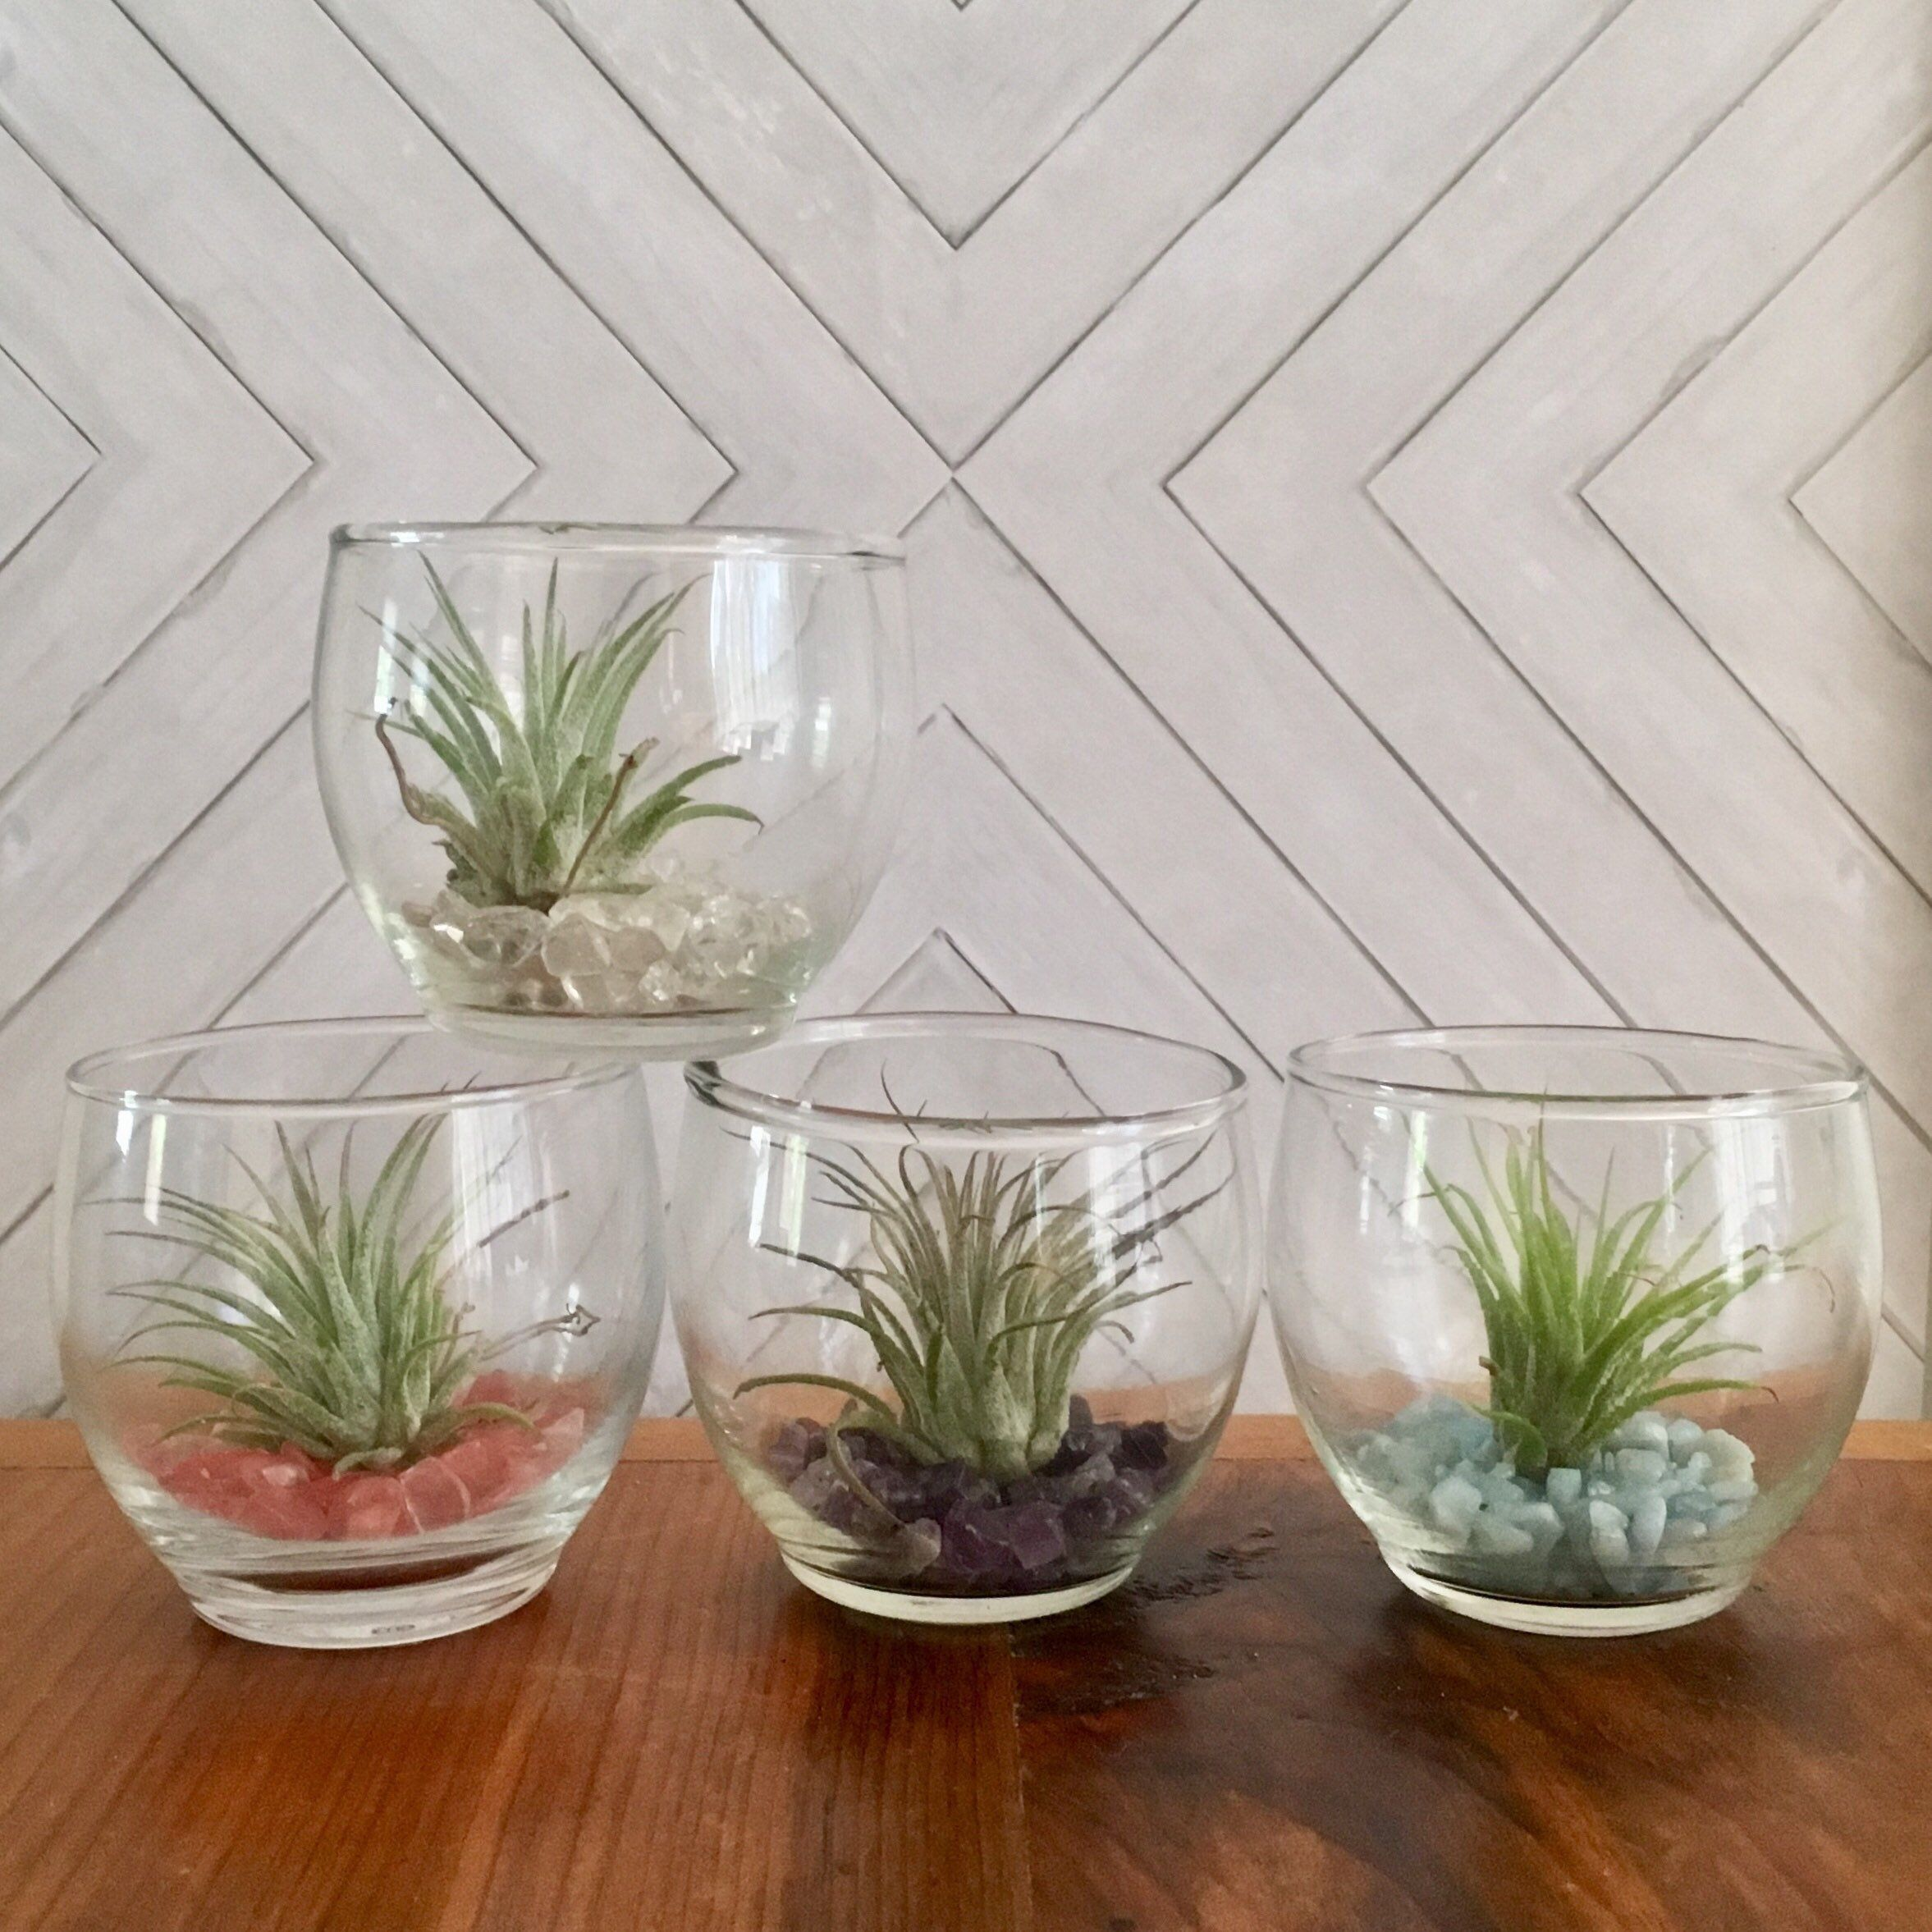 Pin By Cactusgoldfish On Tillandsia Air Plants Pinterest Gifts